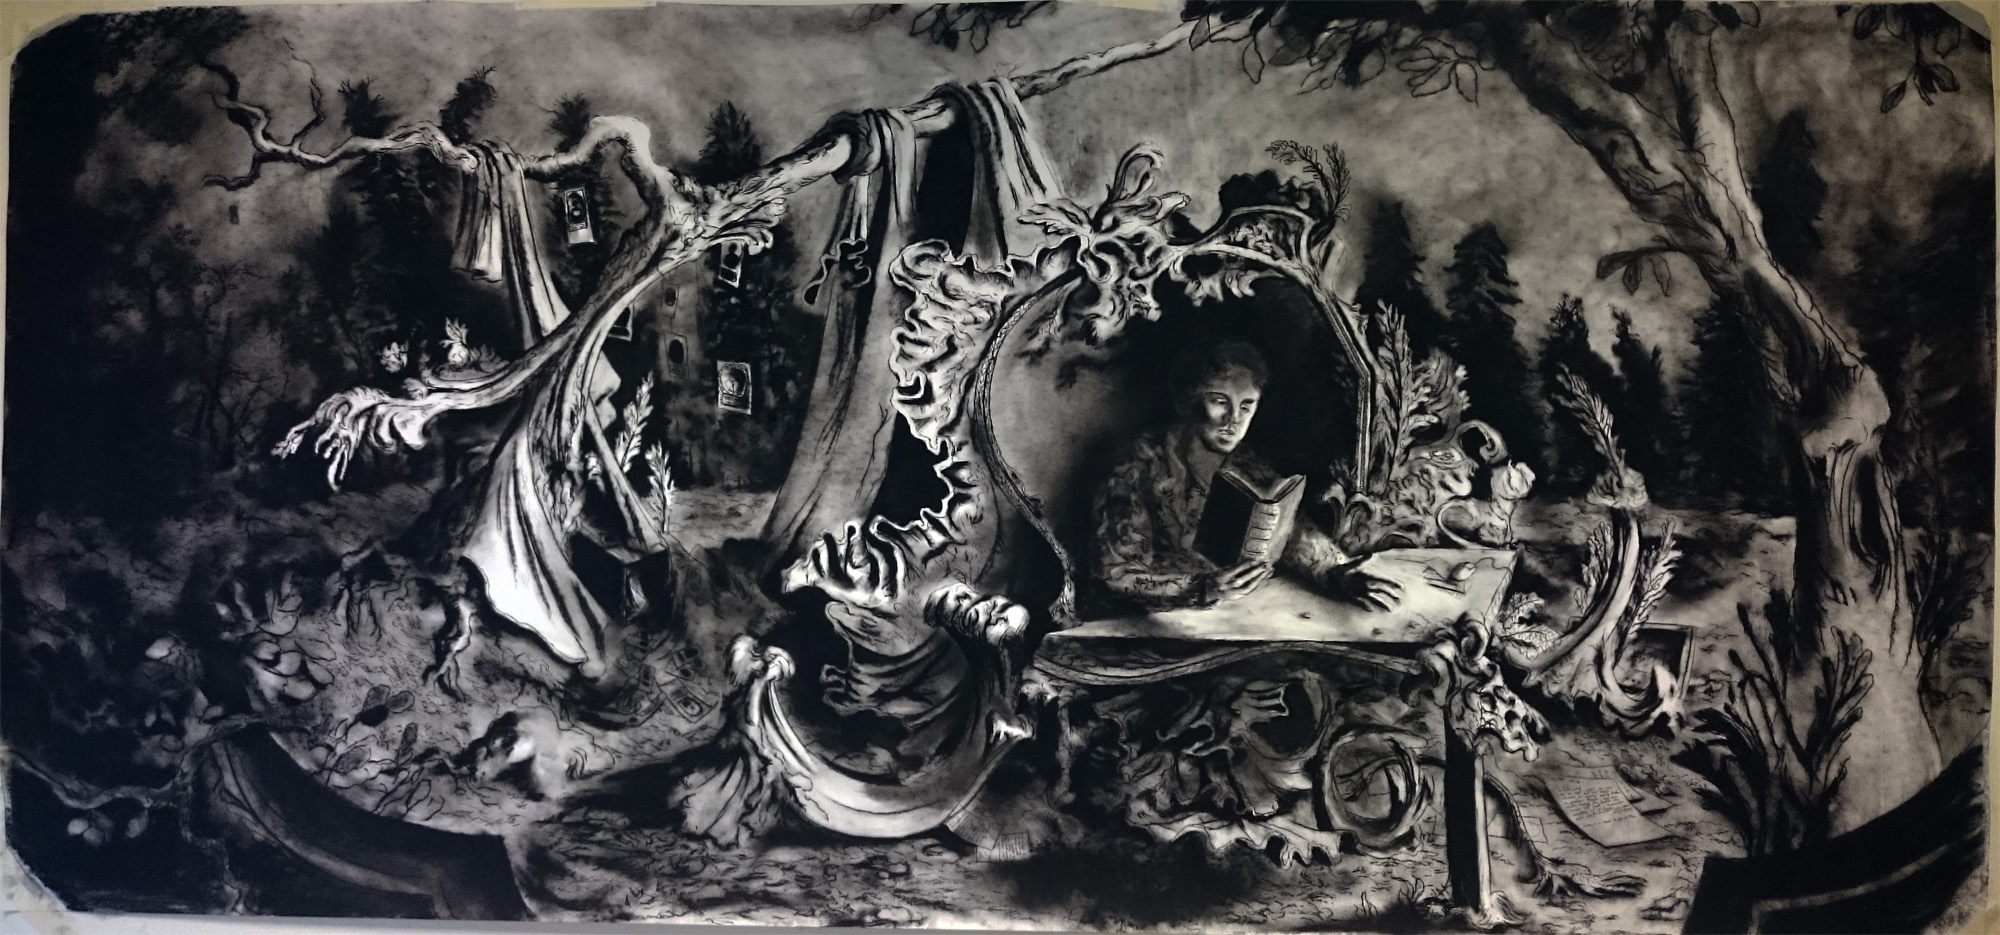 Houbraken island 290x137cm charcoal on paper feb 2016 .